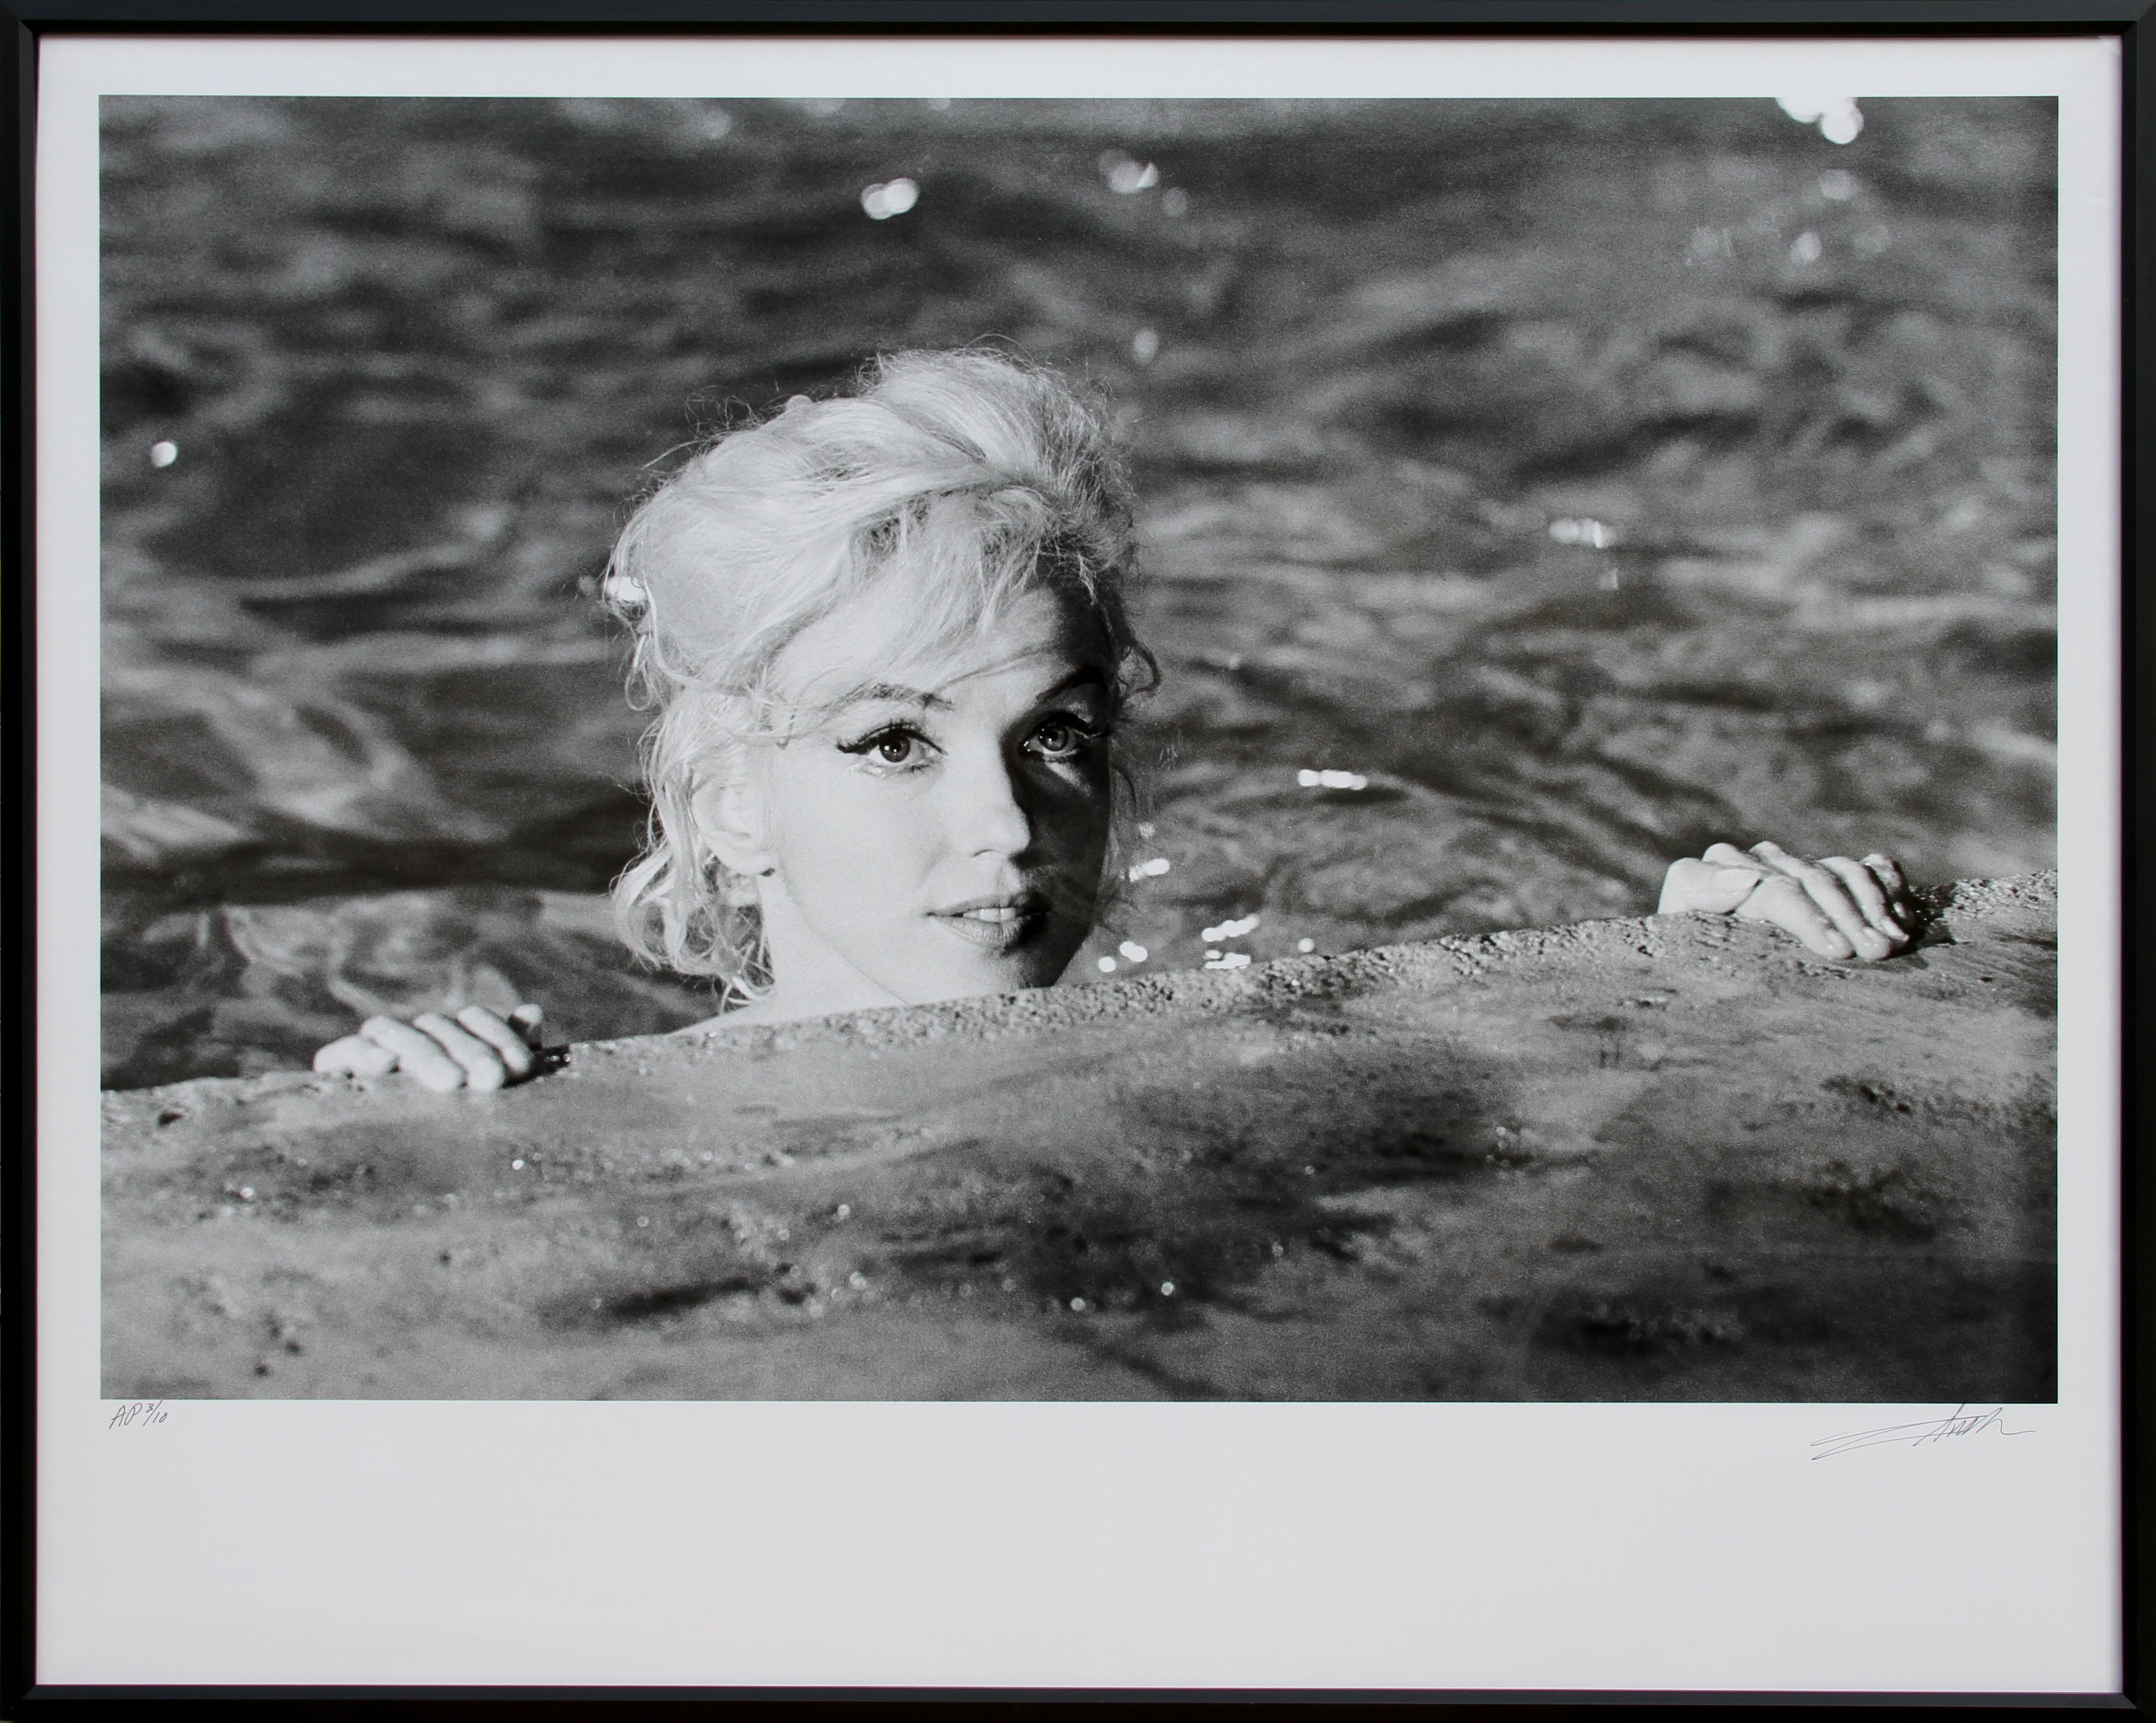 Marilyn Monroe in Something's Got to Give - 5